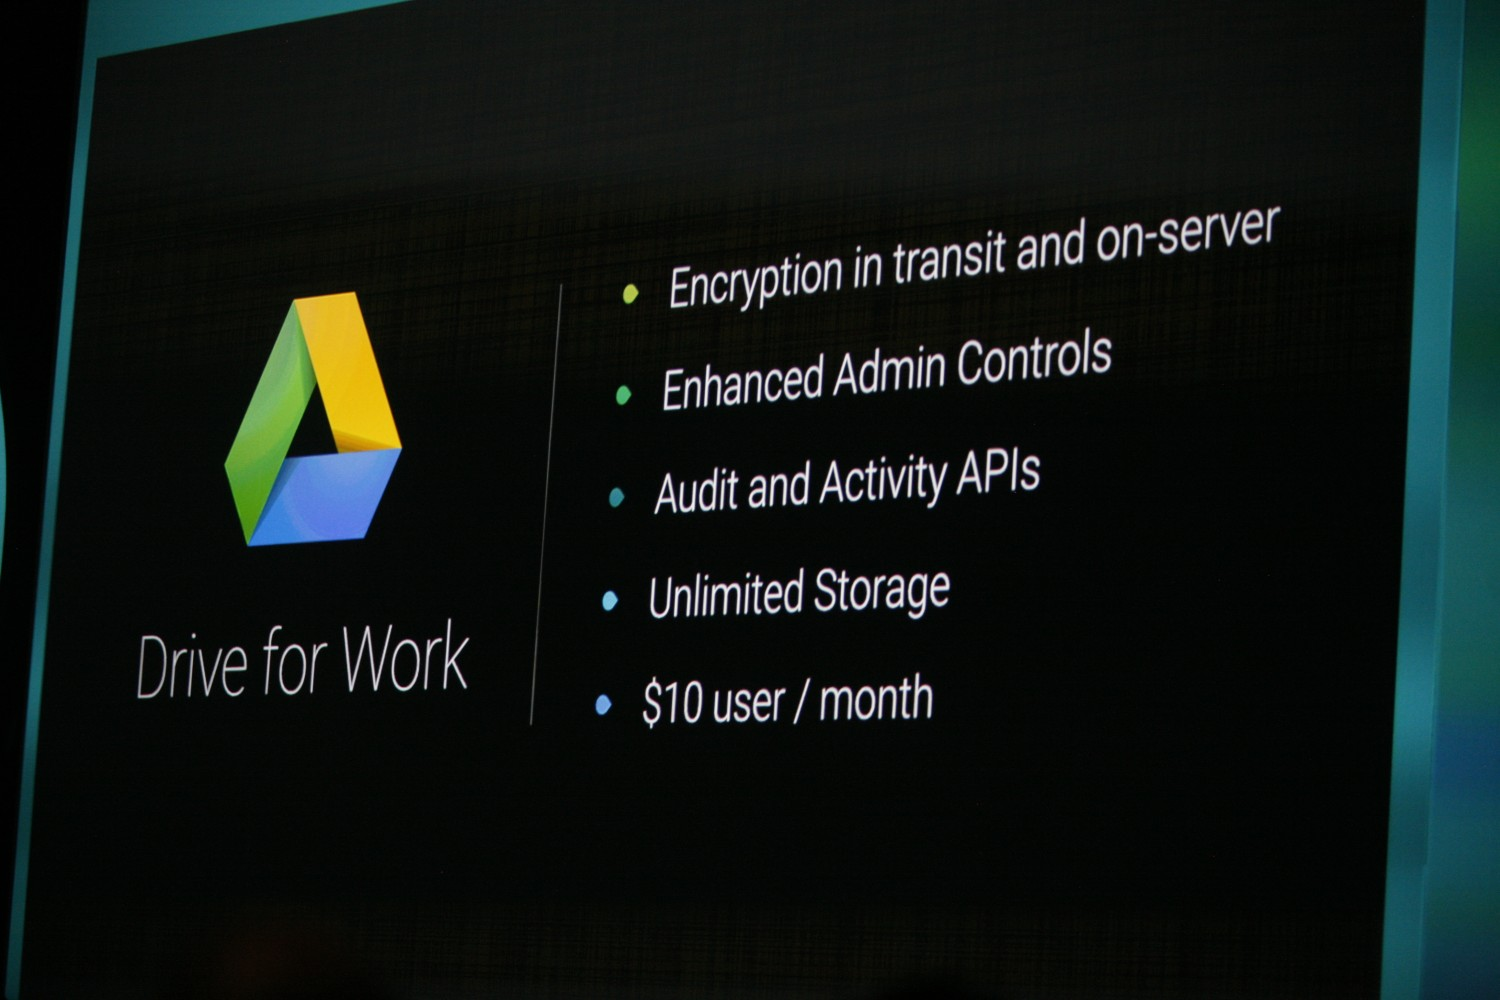 googleio_drive_for_work